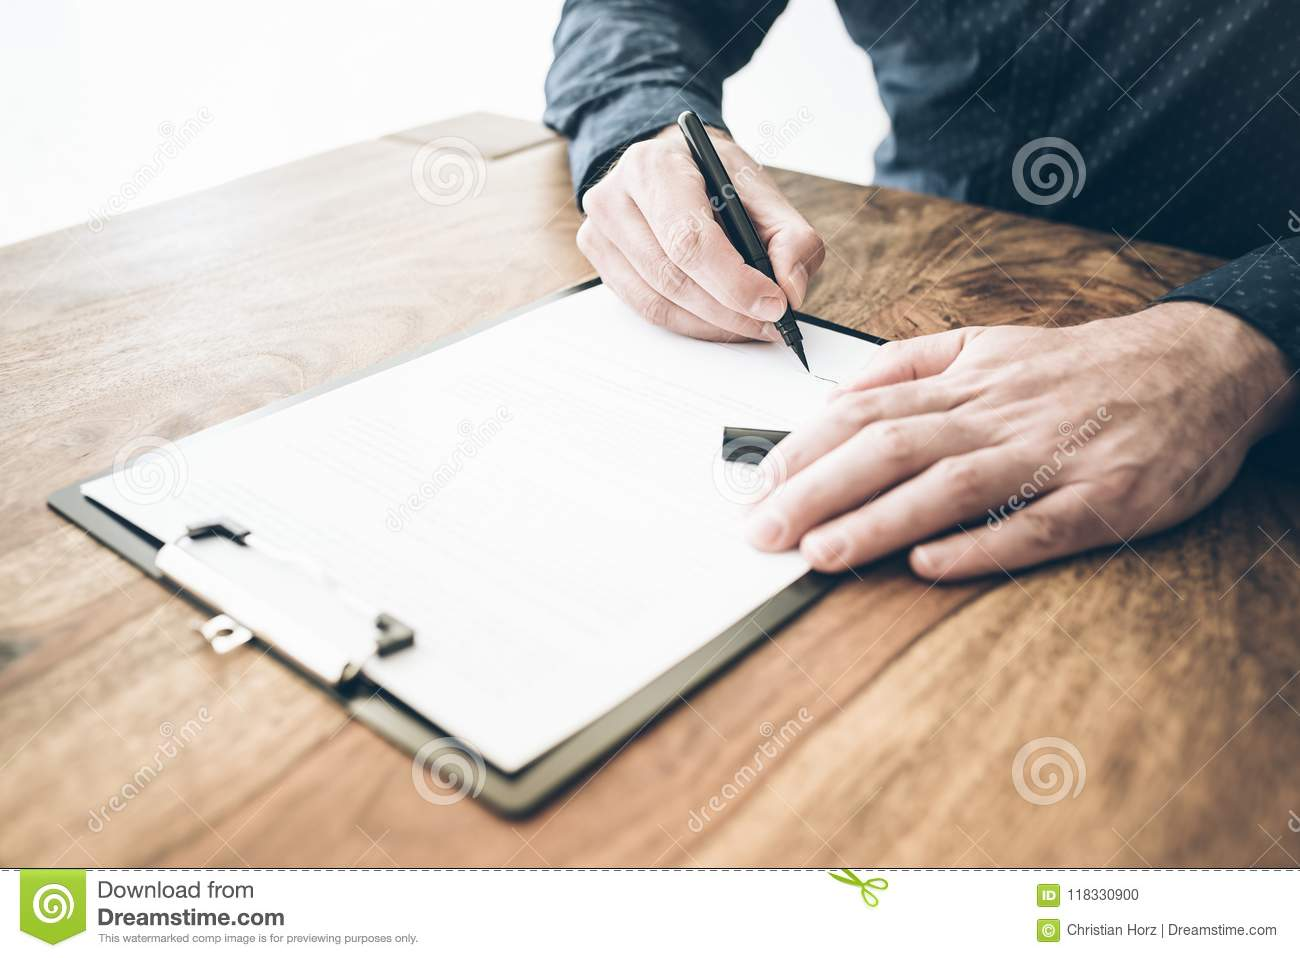 Close-up of businessman signing contract or document on wooden desk